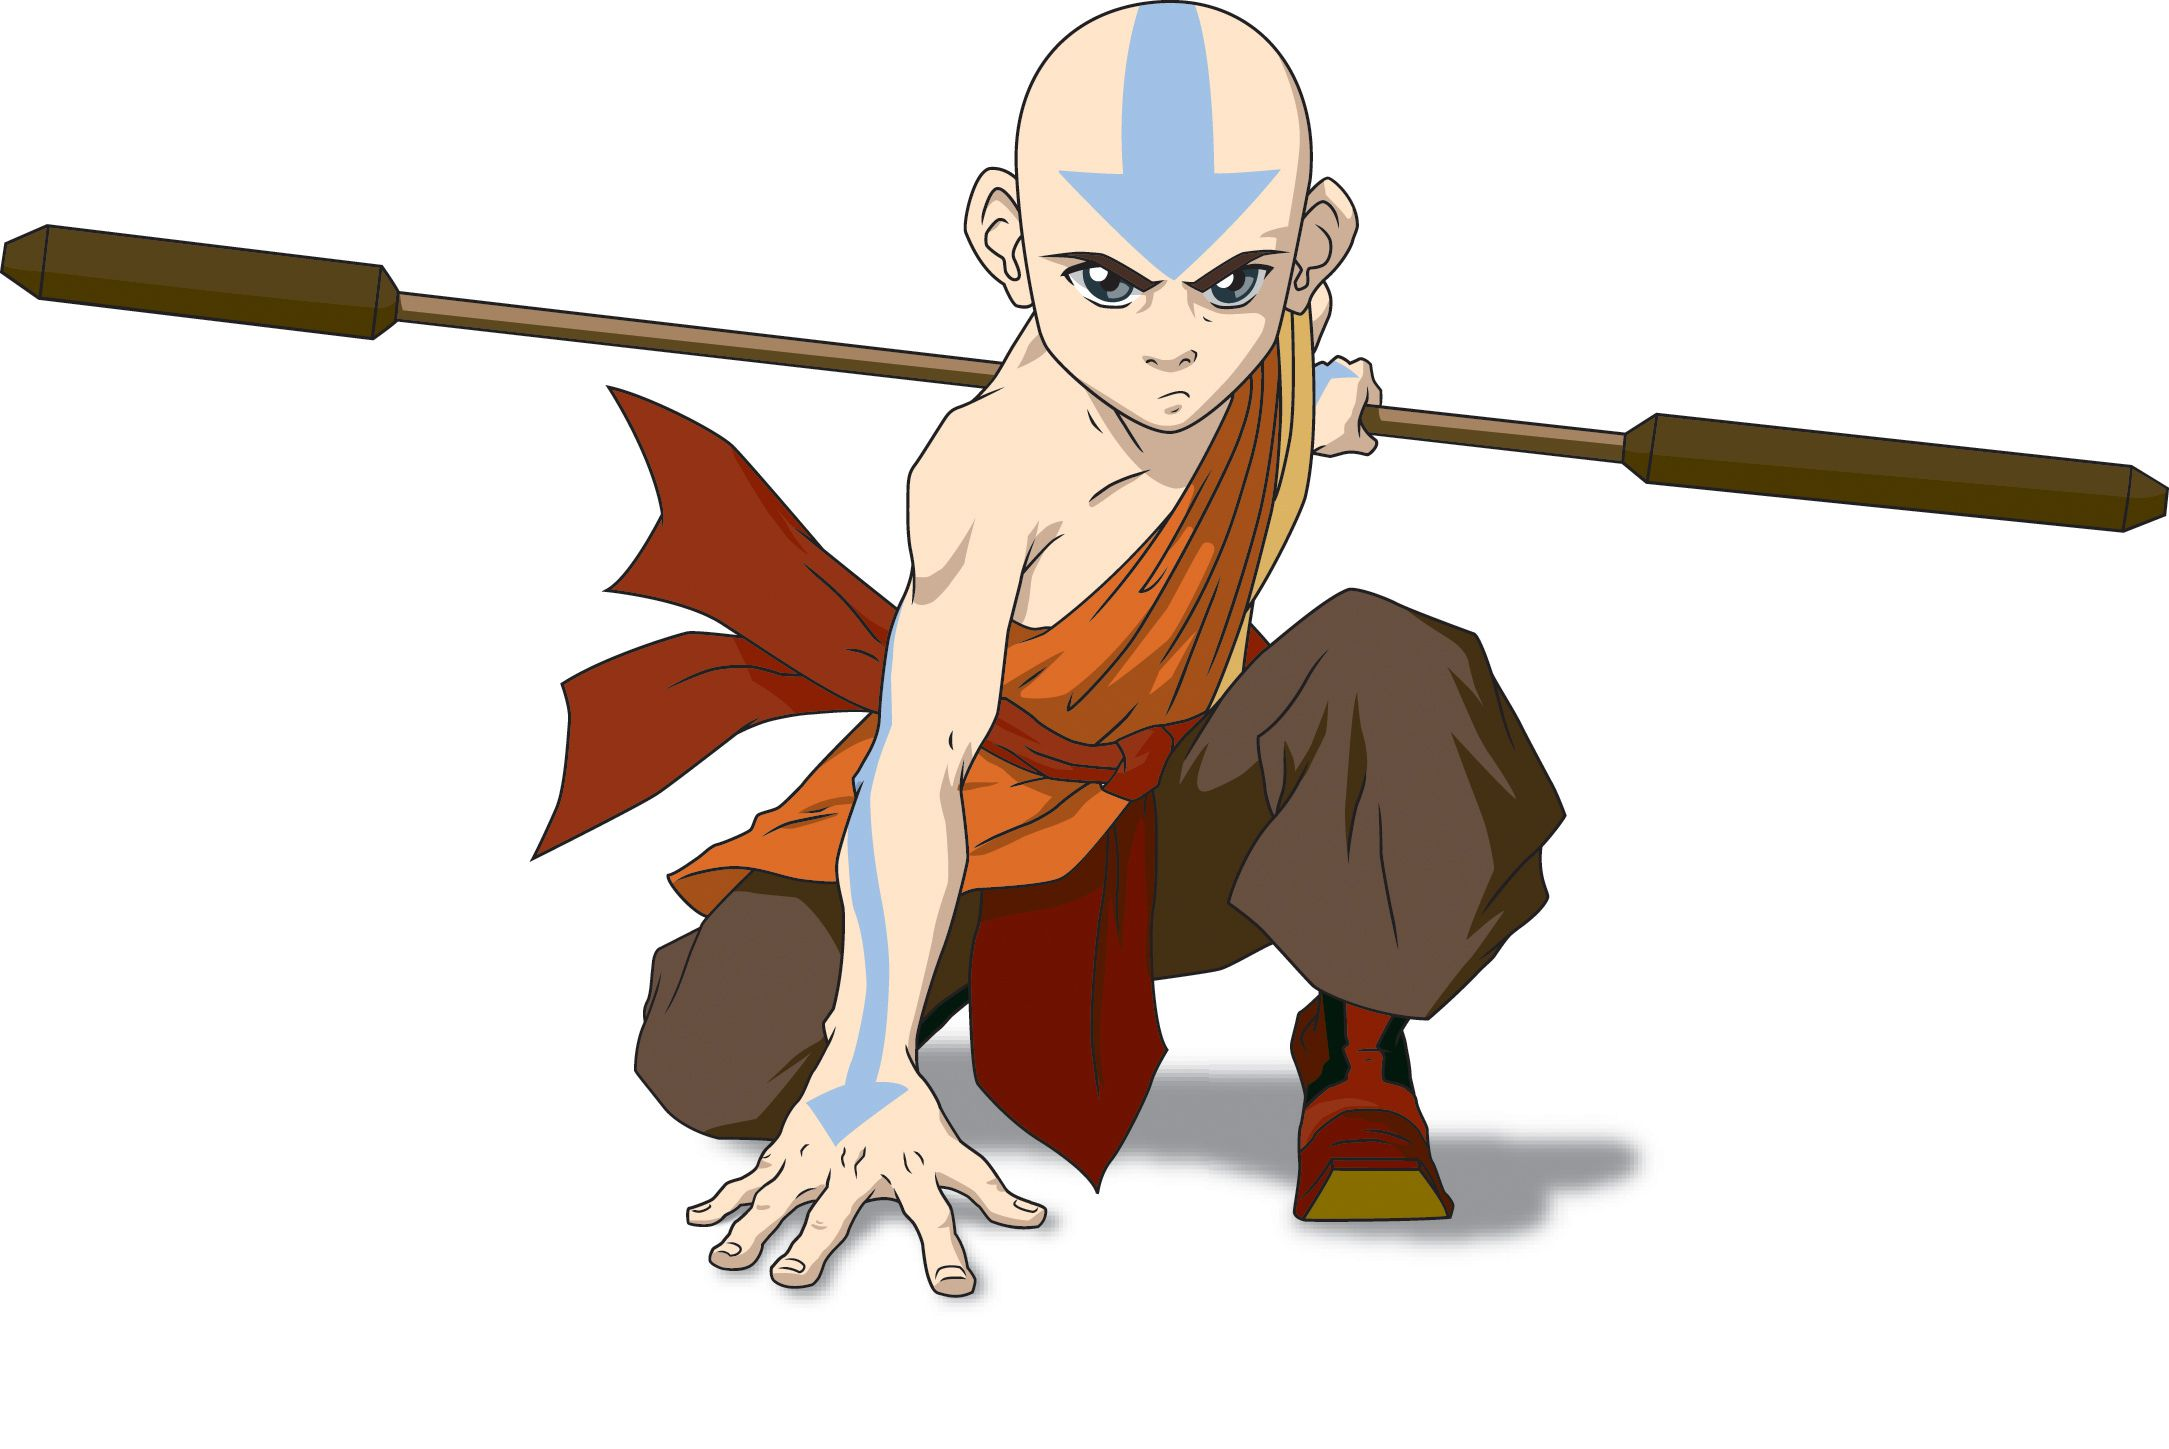 Aang | thoughtco.com